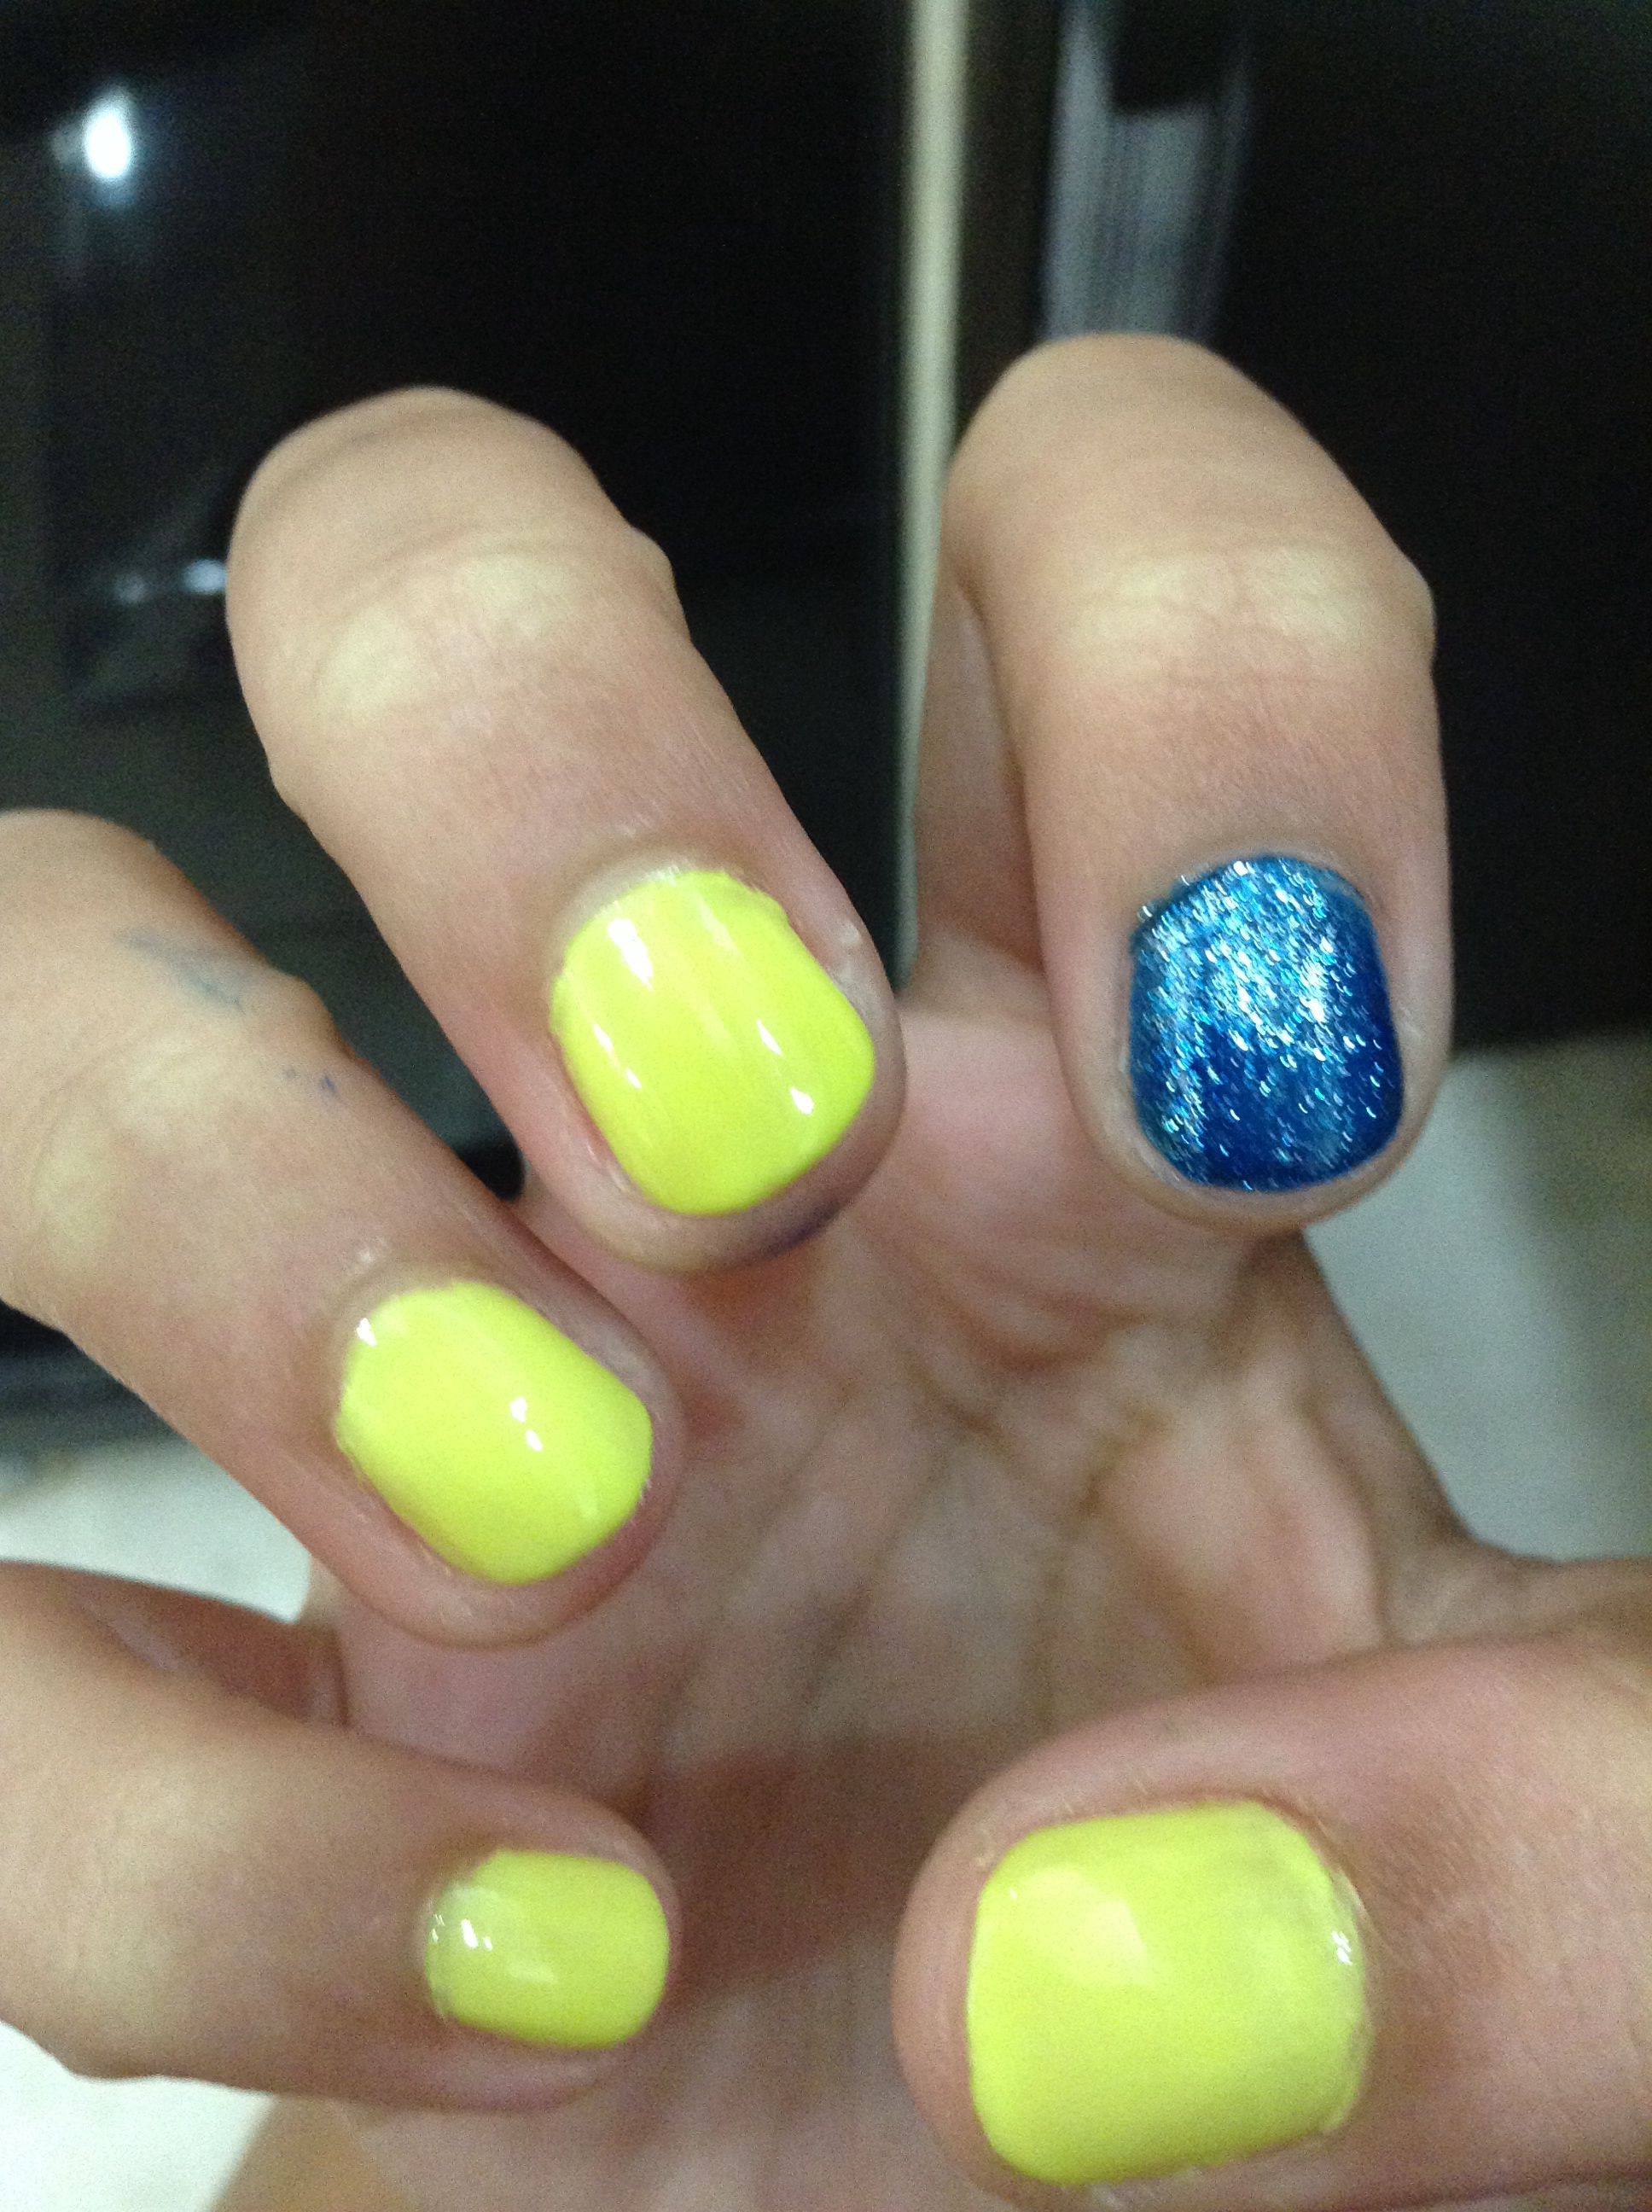 Neon yellow with glittery blue